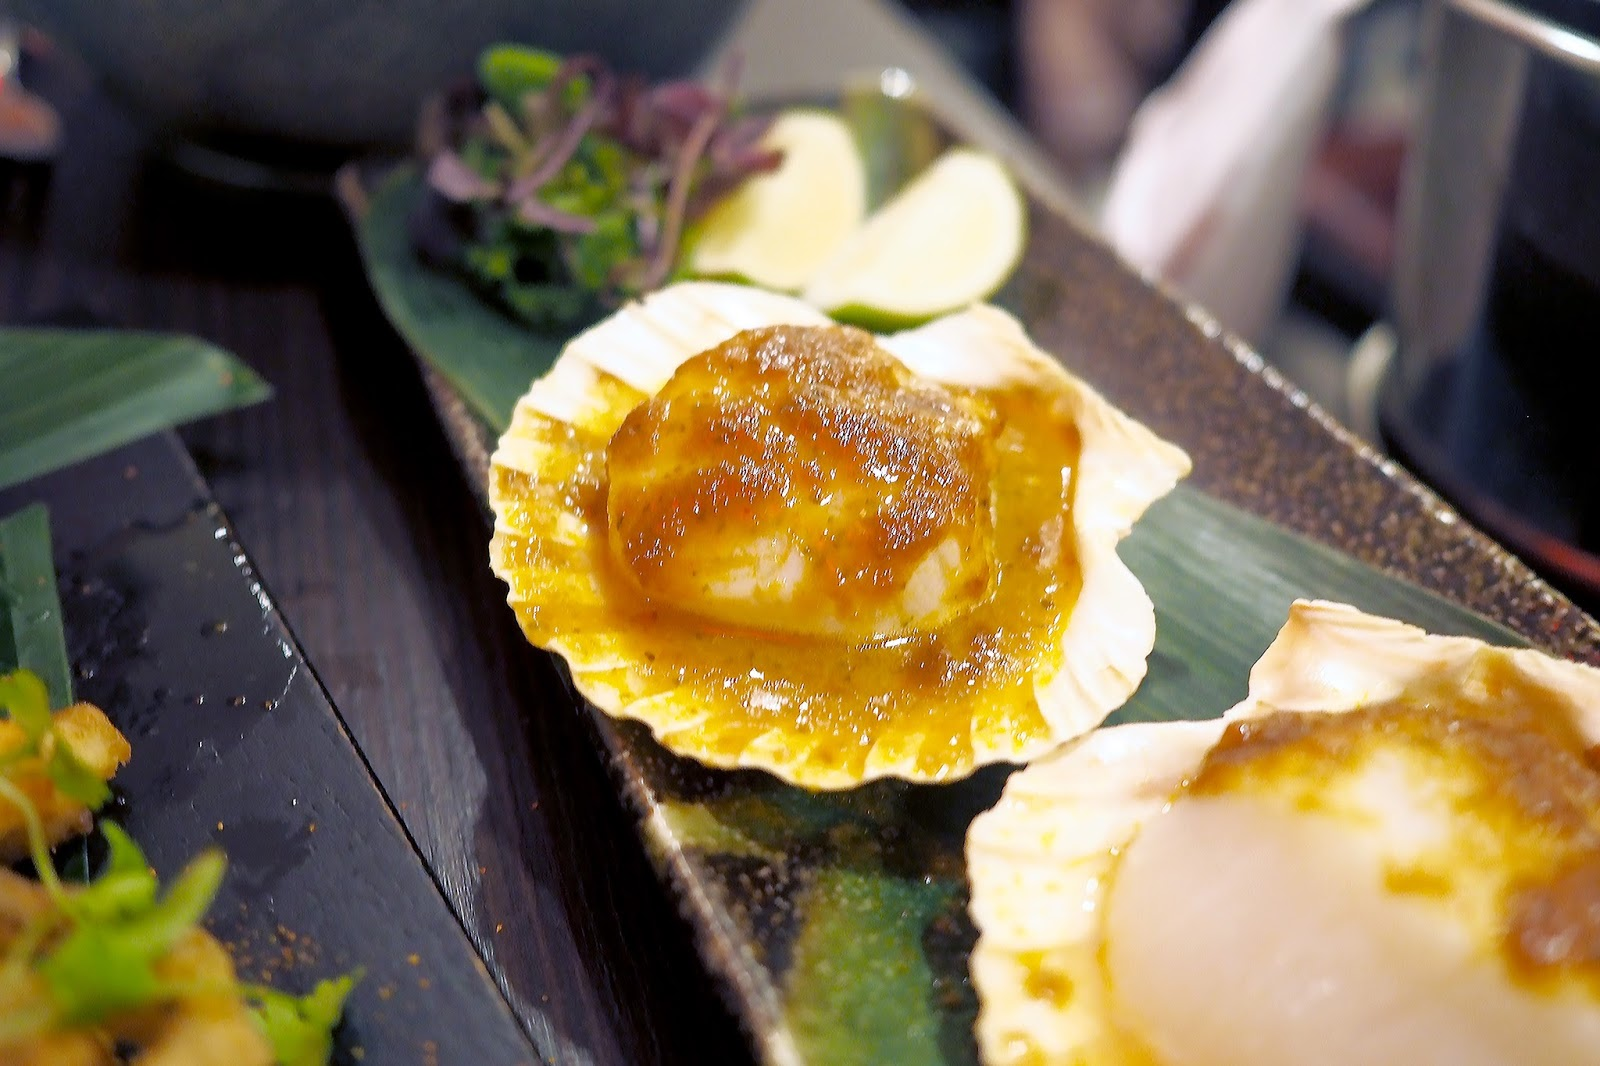 King scallops in shell